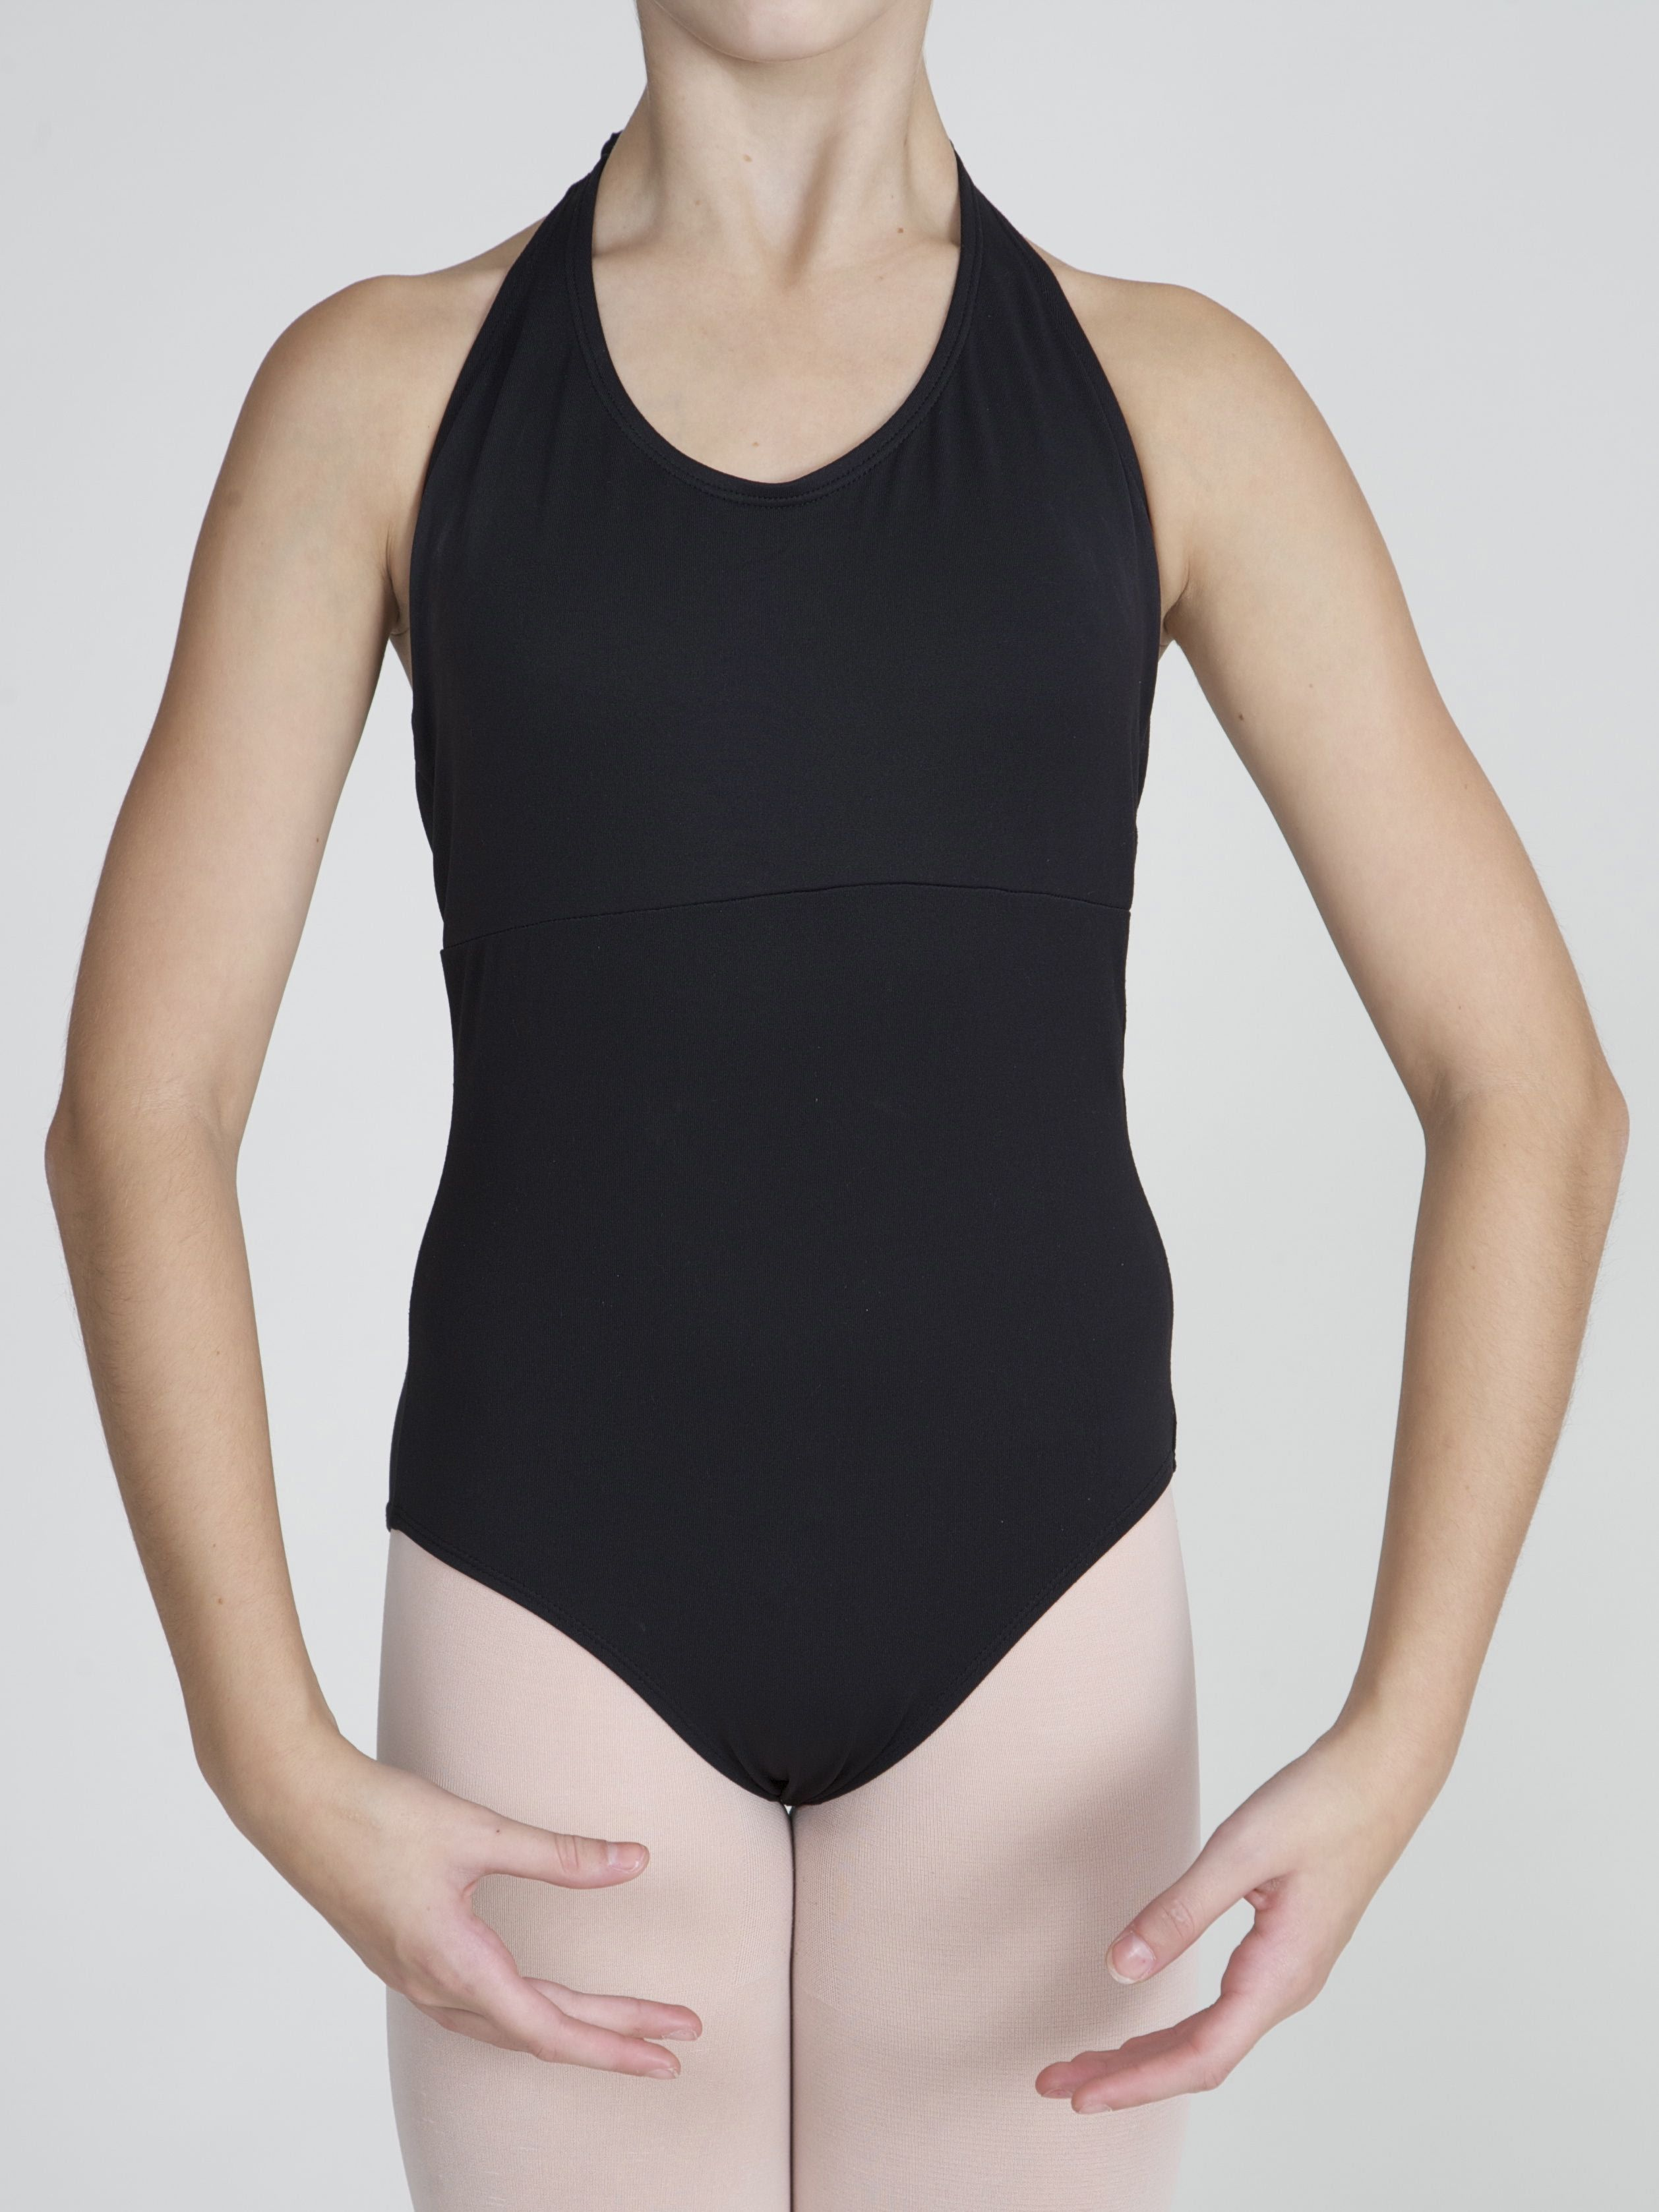 Free Leotard Sewing Pattern | images of leotards dance wear page 2 ...